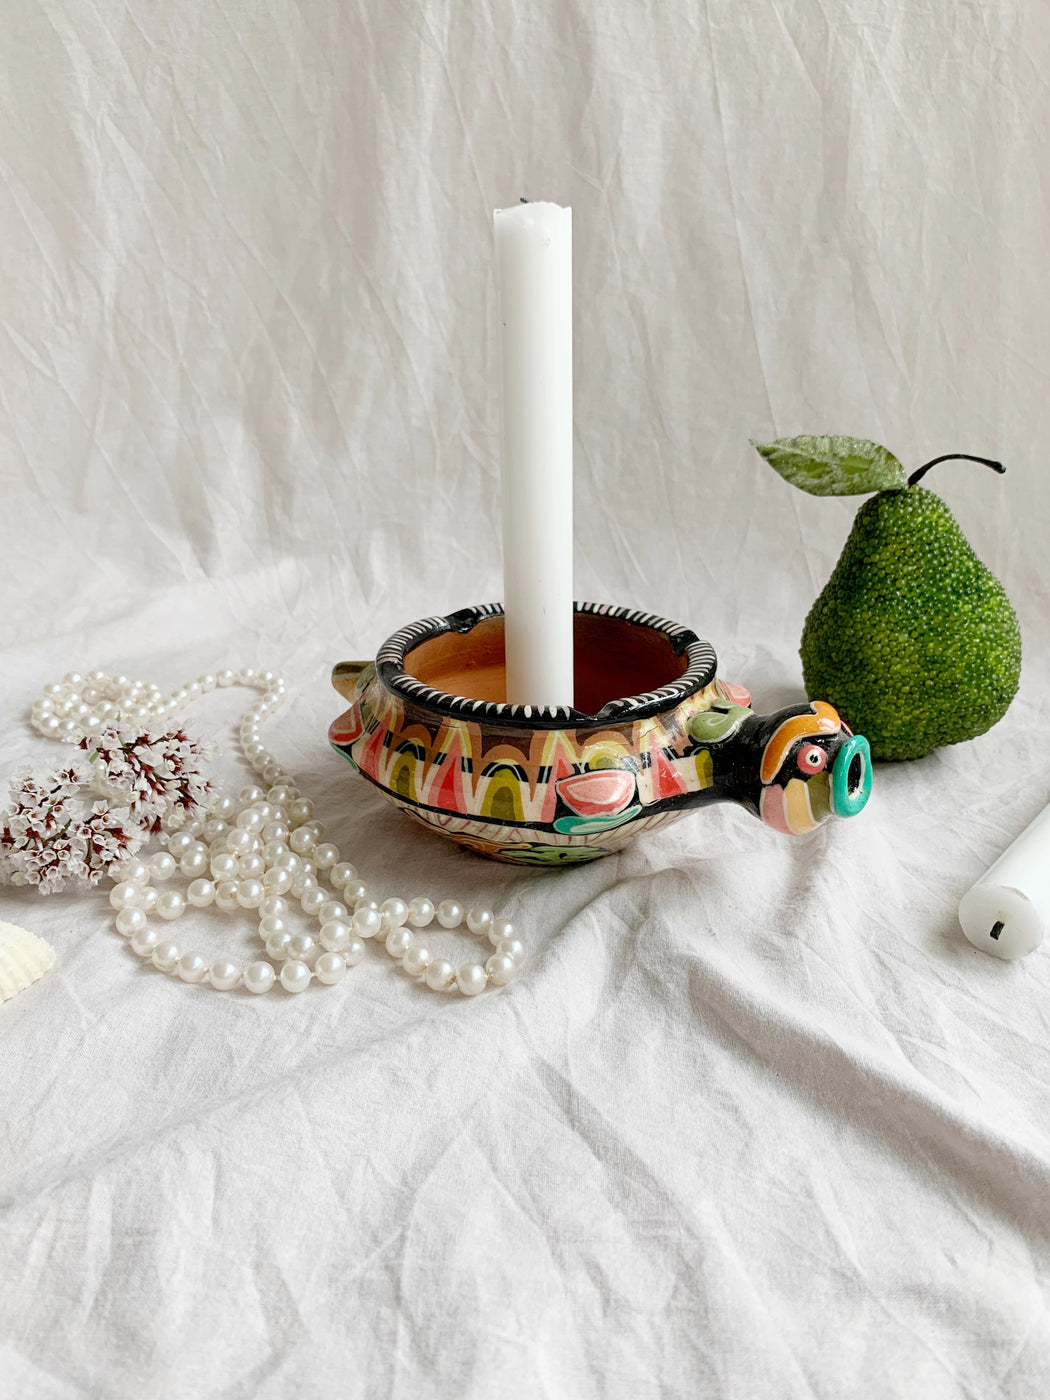 Terracotta Turtle Candlestick Holder | Storytellers Workshop